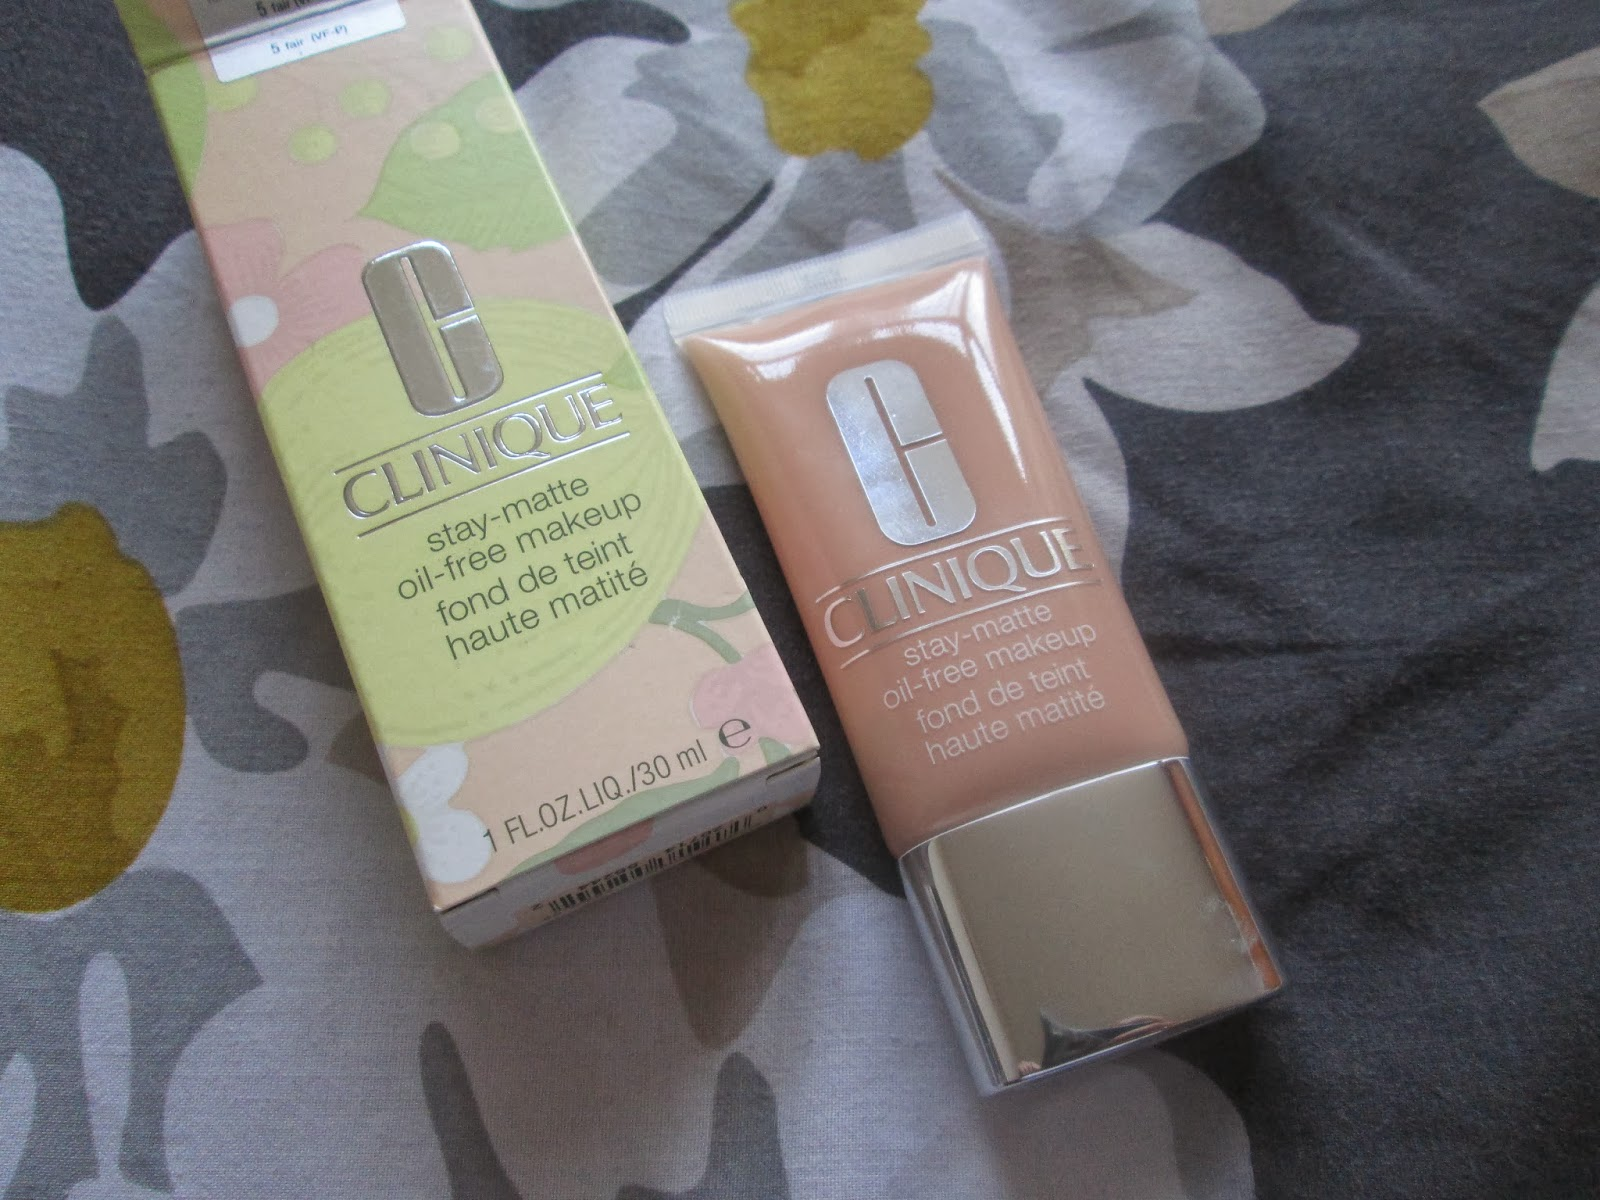 Made you look clinique stay matte foundation review for Where is clinique made